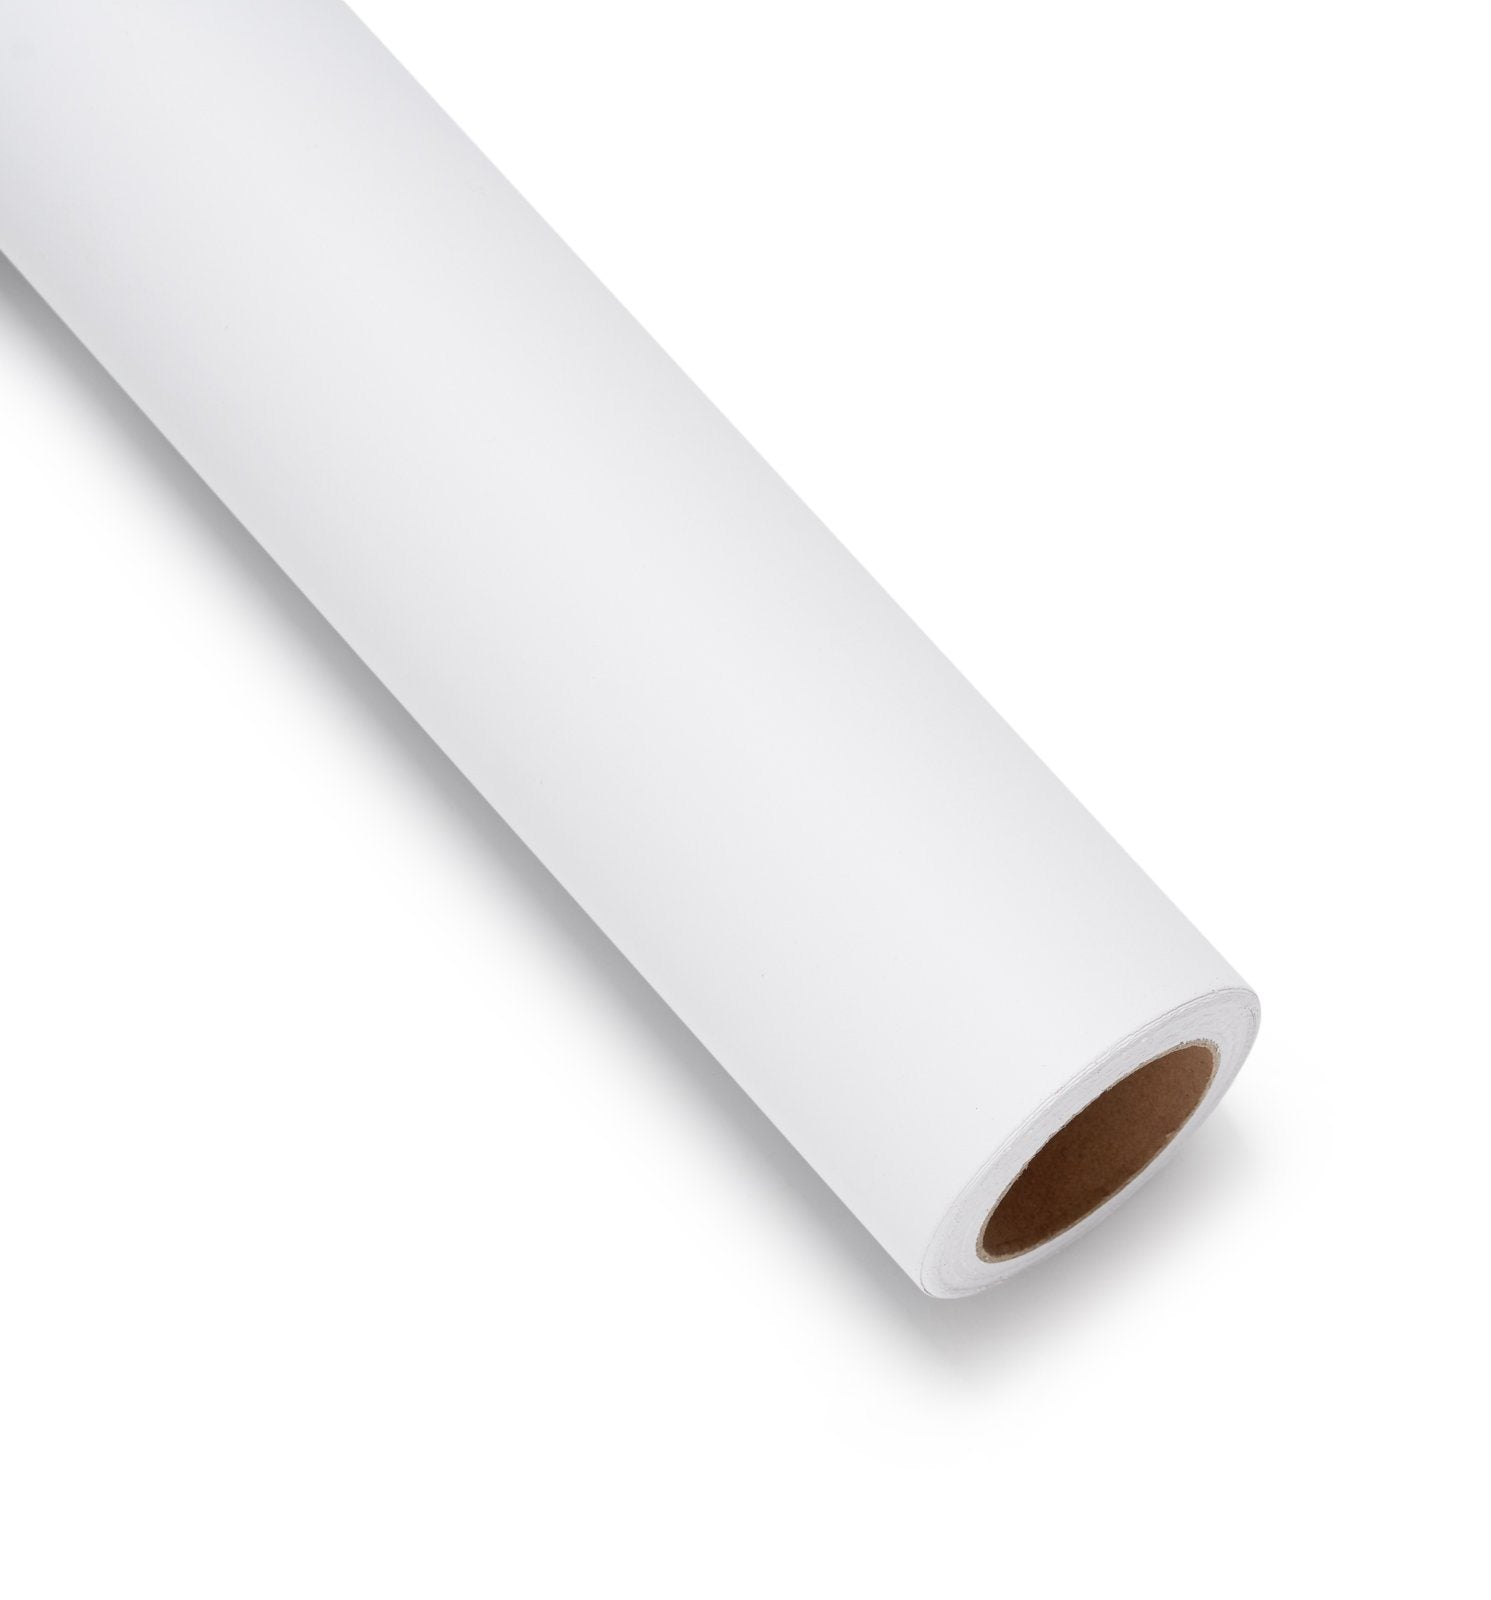 1.3M White Paper Backdrop | Luvo Store